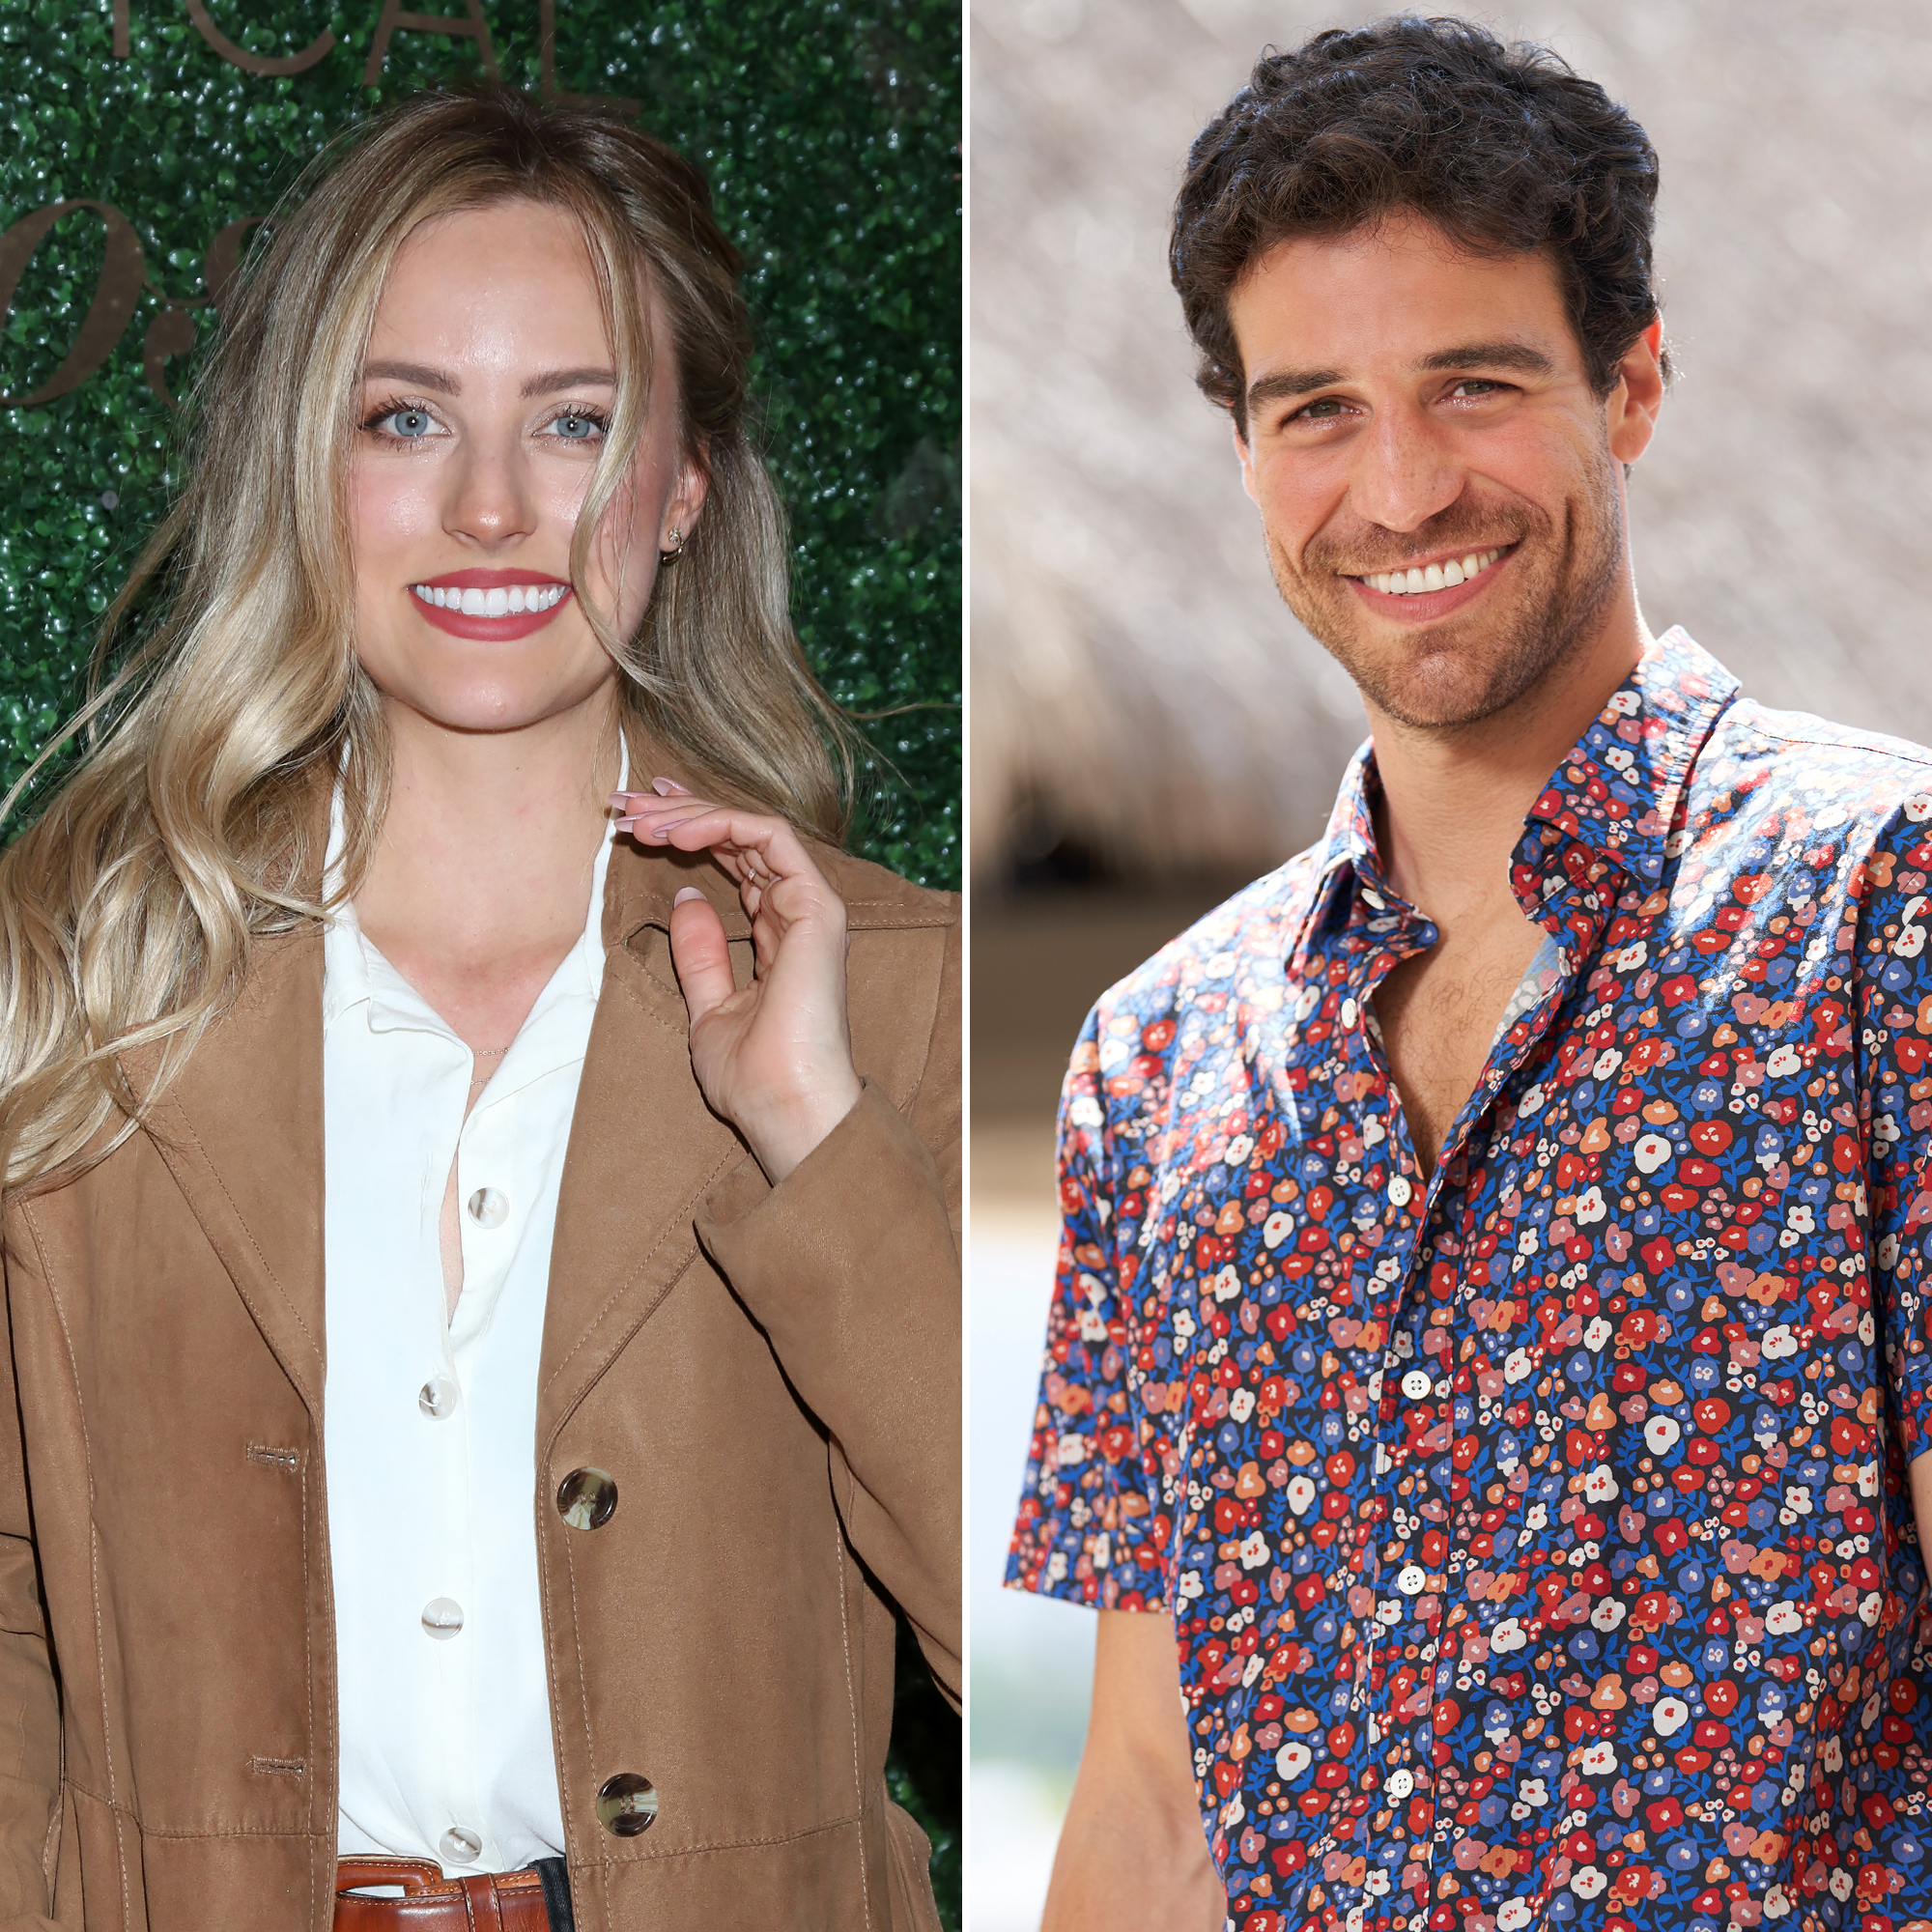 Kendall Long Was Looking for 'Closure' and 'Ready to Fall in Love Again' on 'Bachelor in Paradise' After Joe Amabile Split